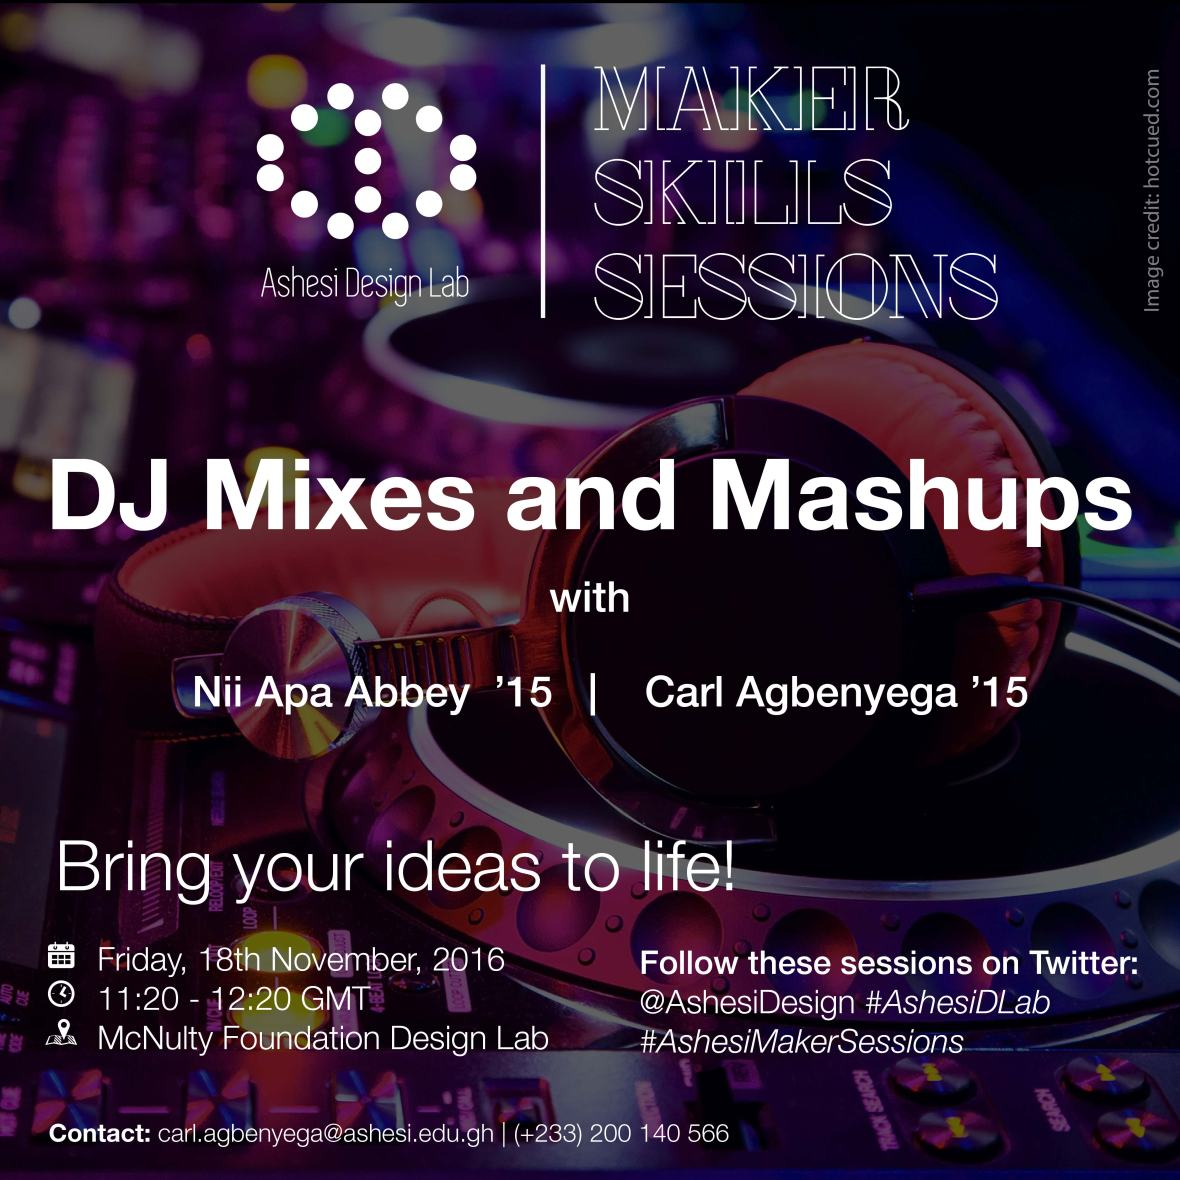 ashesi-dlab-maker-skills-sessions-dj-mixes-and-mashups-01